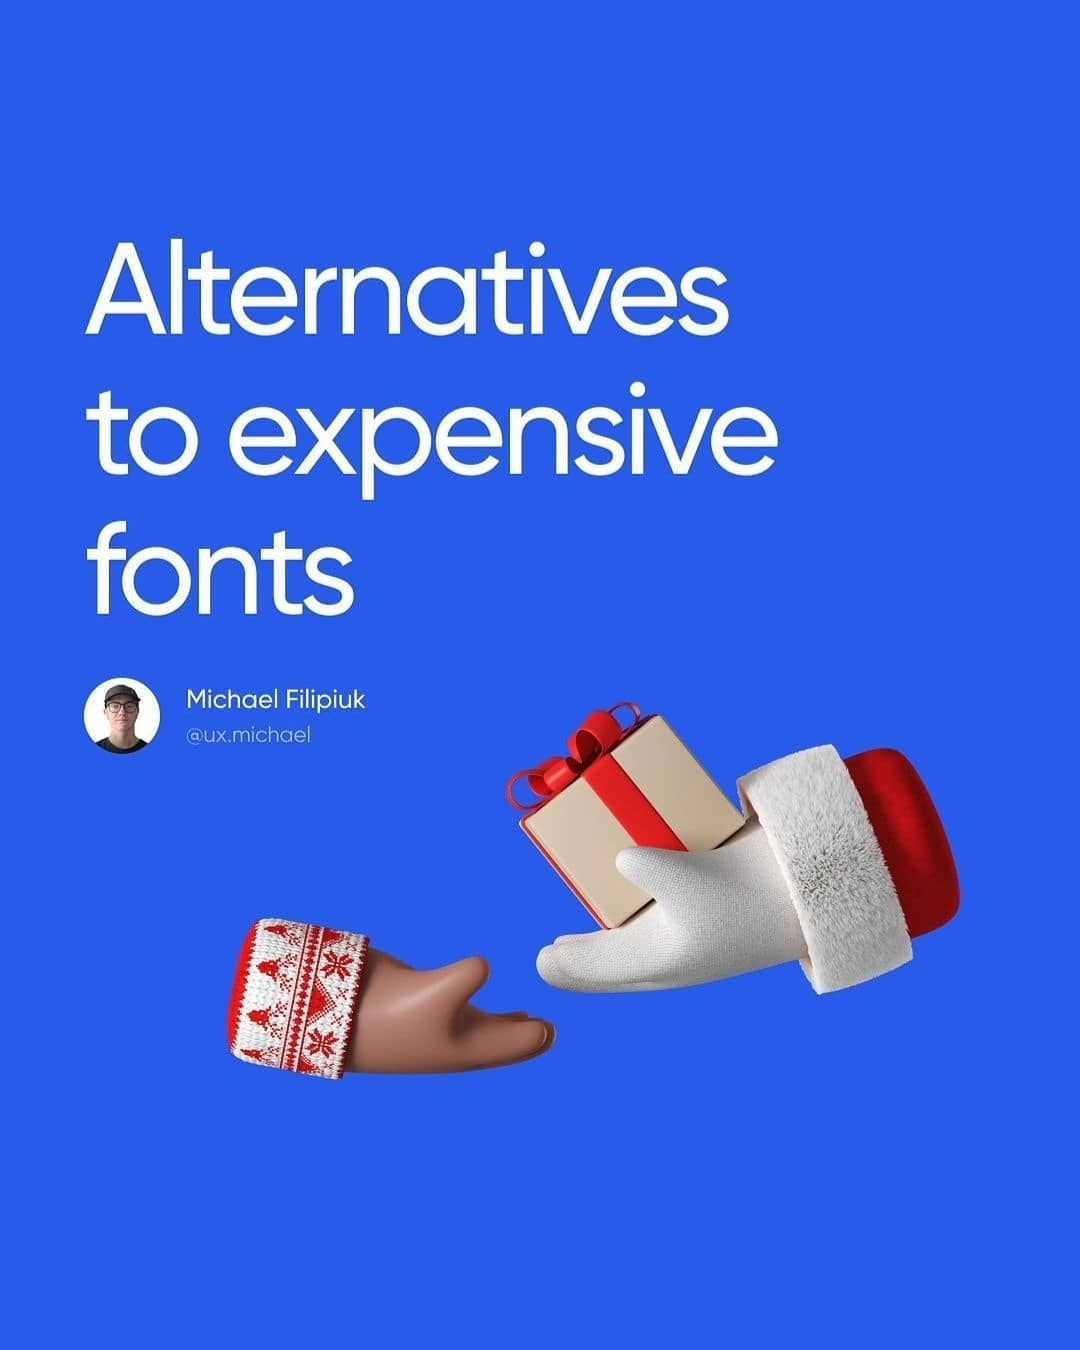 Alternatives to expensive fonts